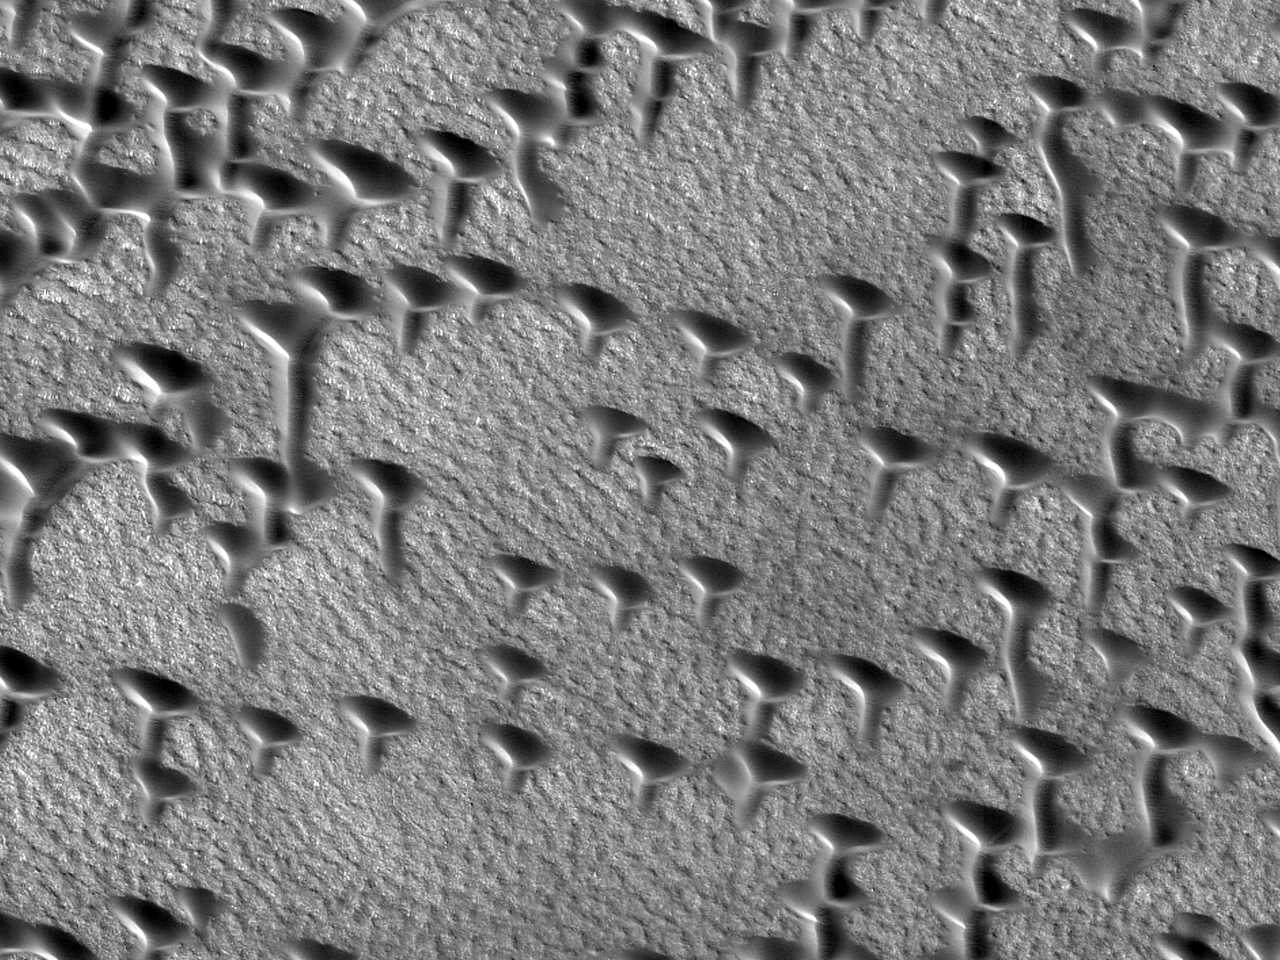 Dunes in the Shapes of Ts and Vs